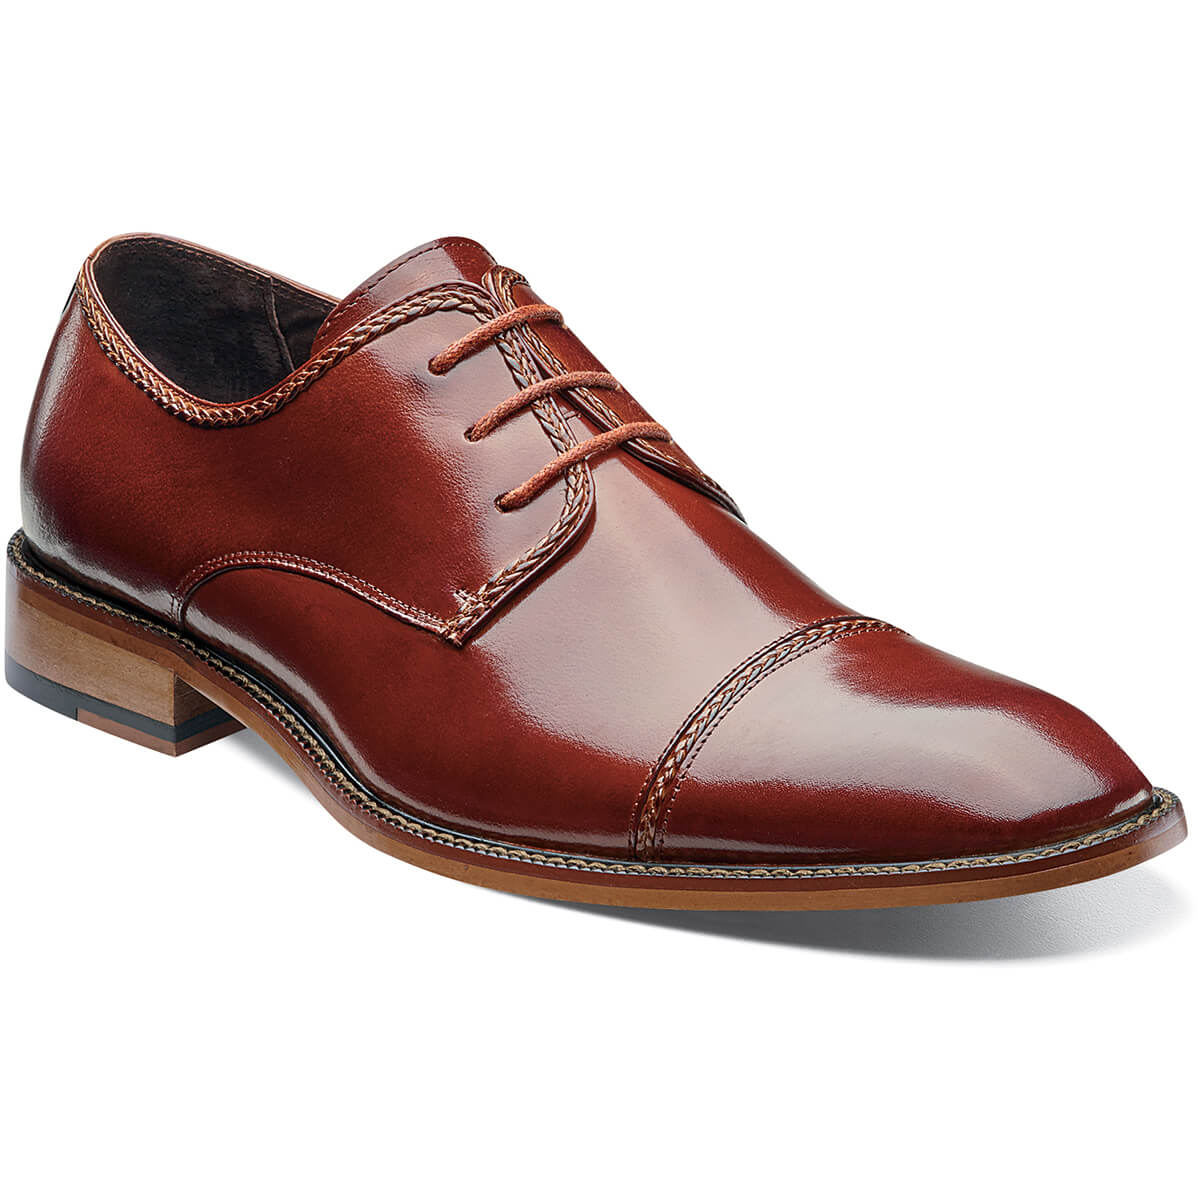 Stacy Adams Brayden Cap Toe Oxford - Cognac Shoes - Dapperfam.com